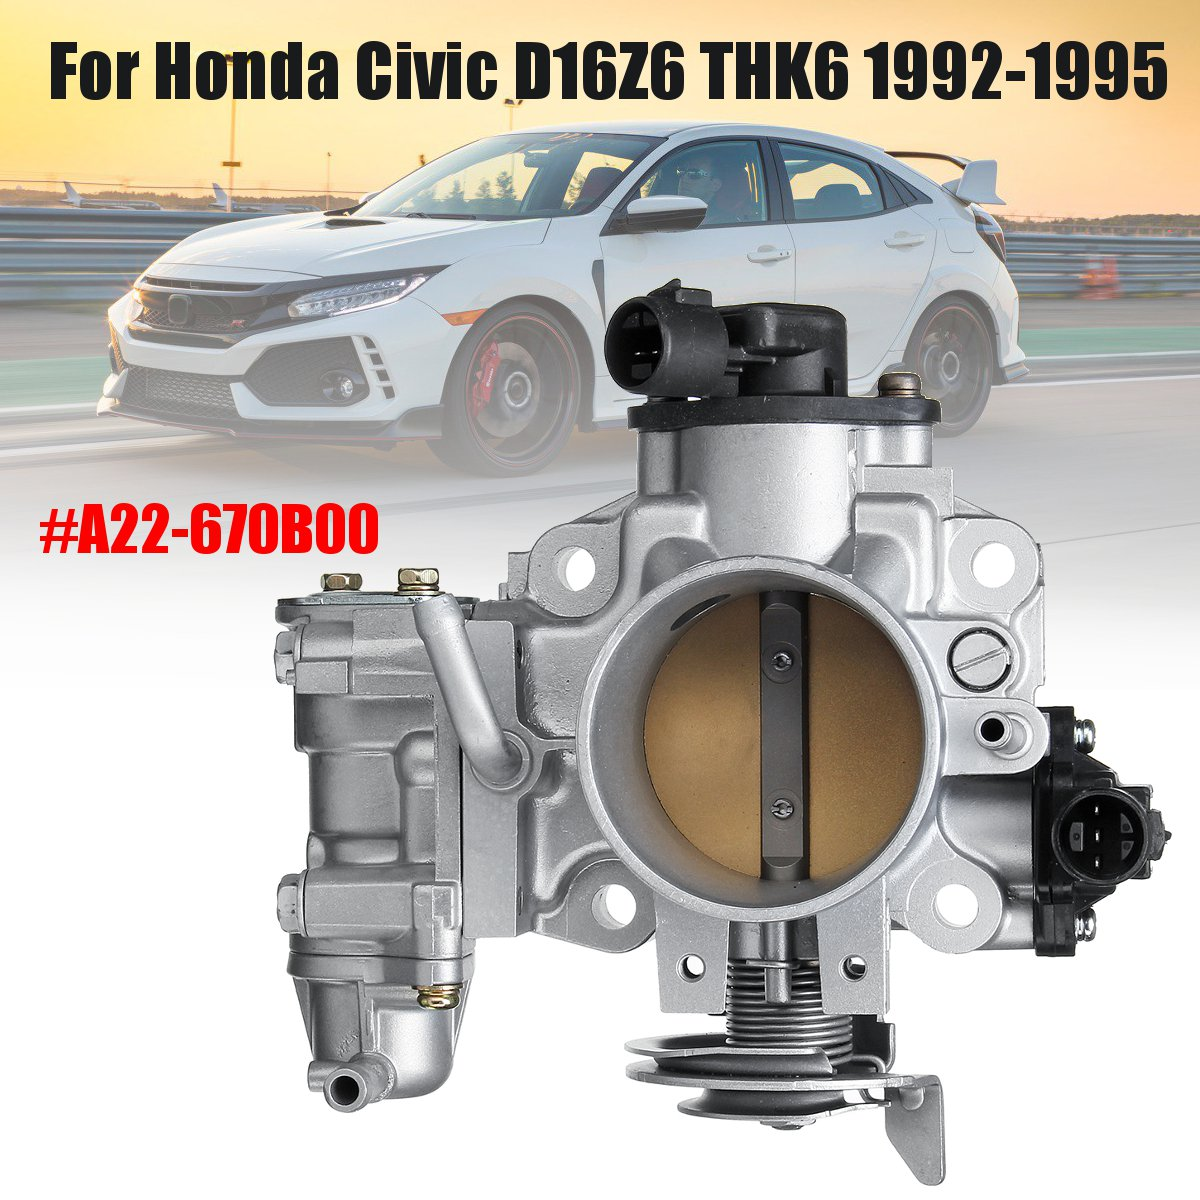 3 Pins Car Throttle Body Assembly Air Intake System For Honda for Civic D16Z6 THK6 1992-1995 #A22-670B00